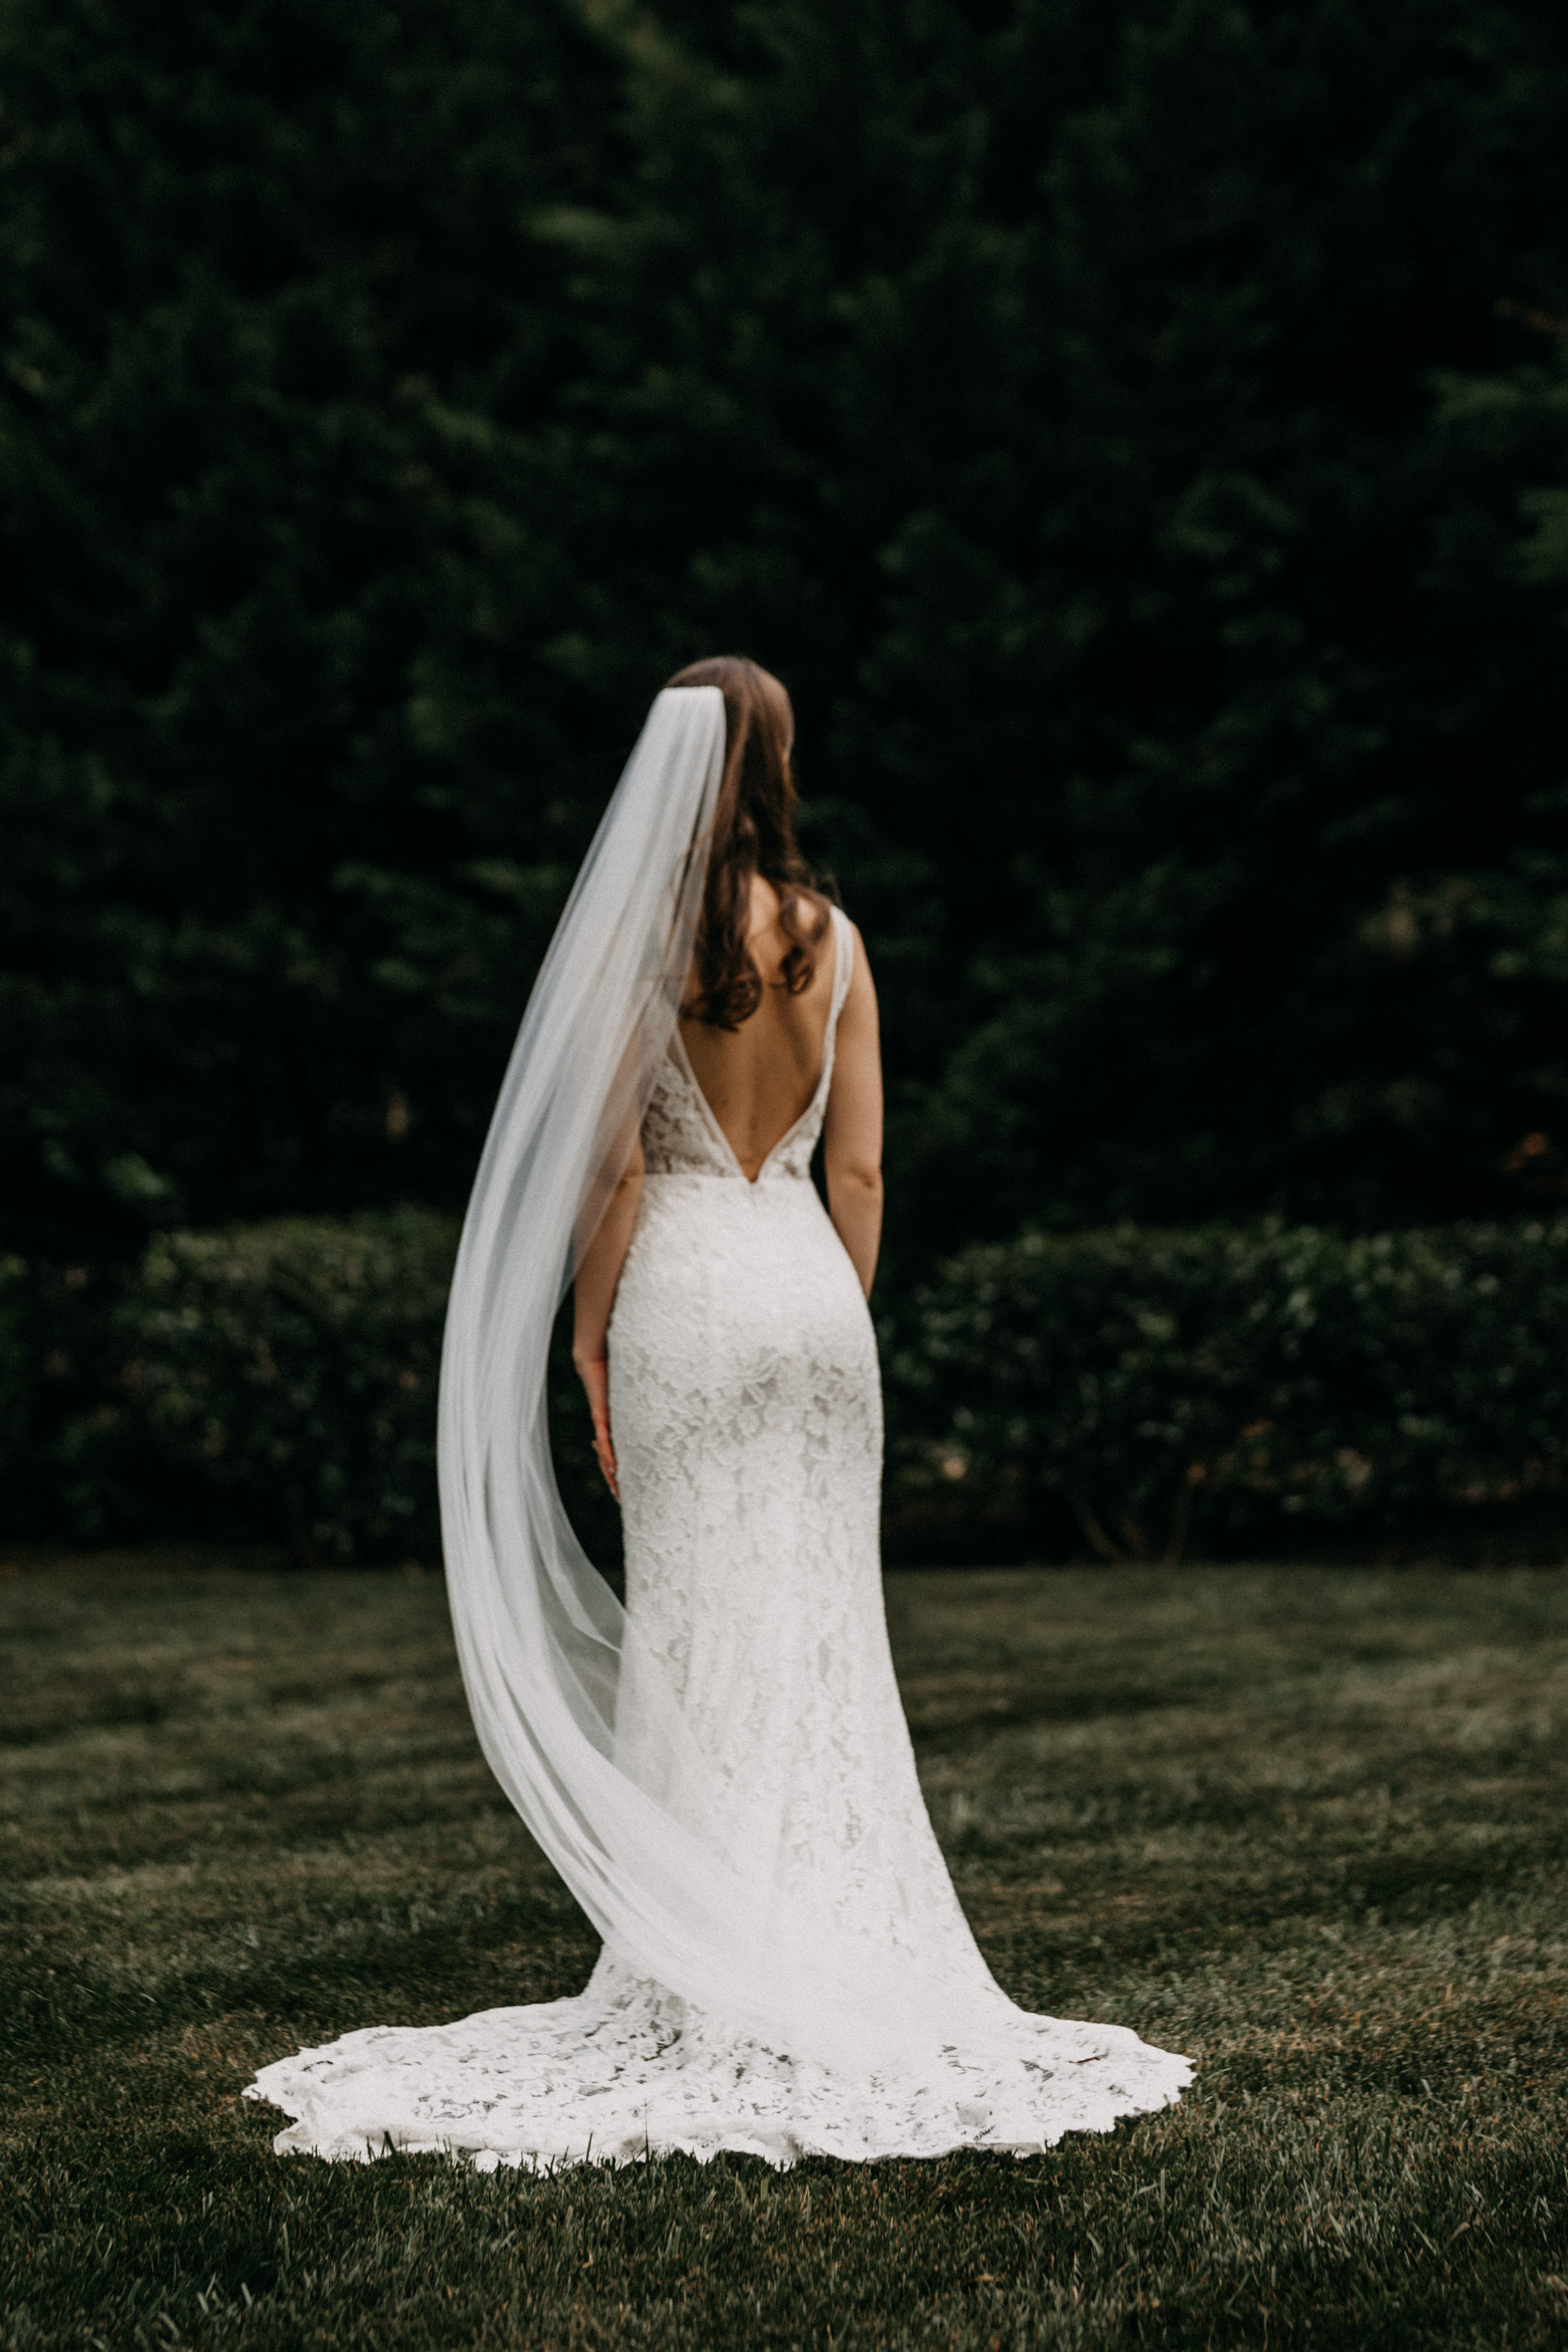 whitehead-manor-wedding-charlotte-nc-shellie-jarrett092.jpg